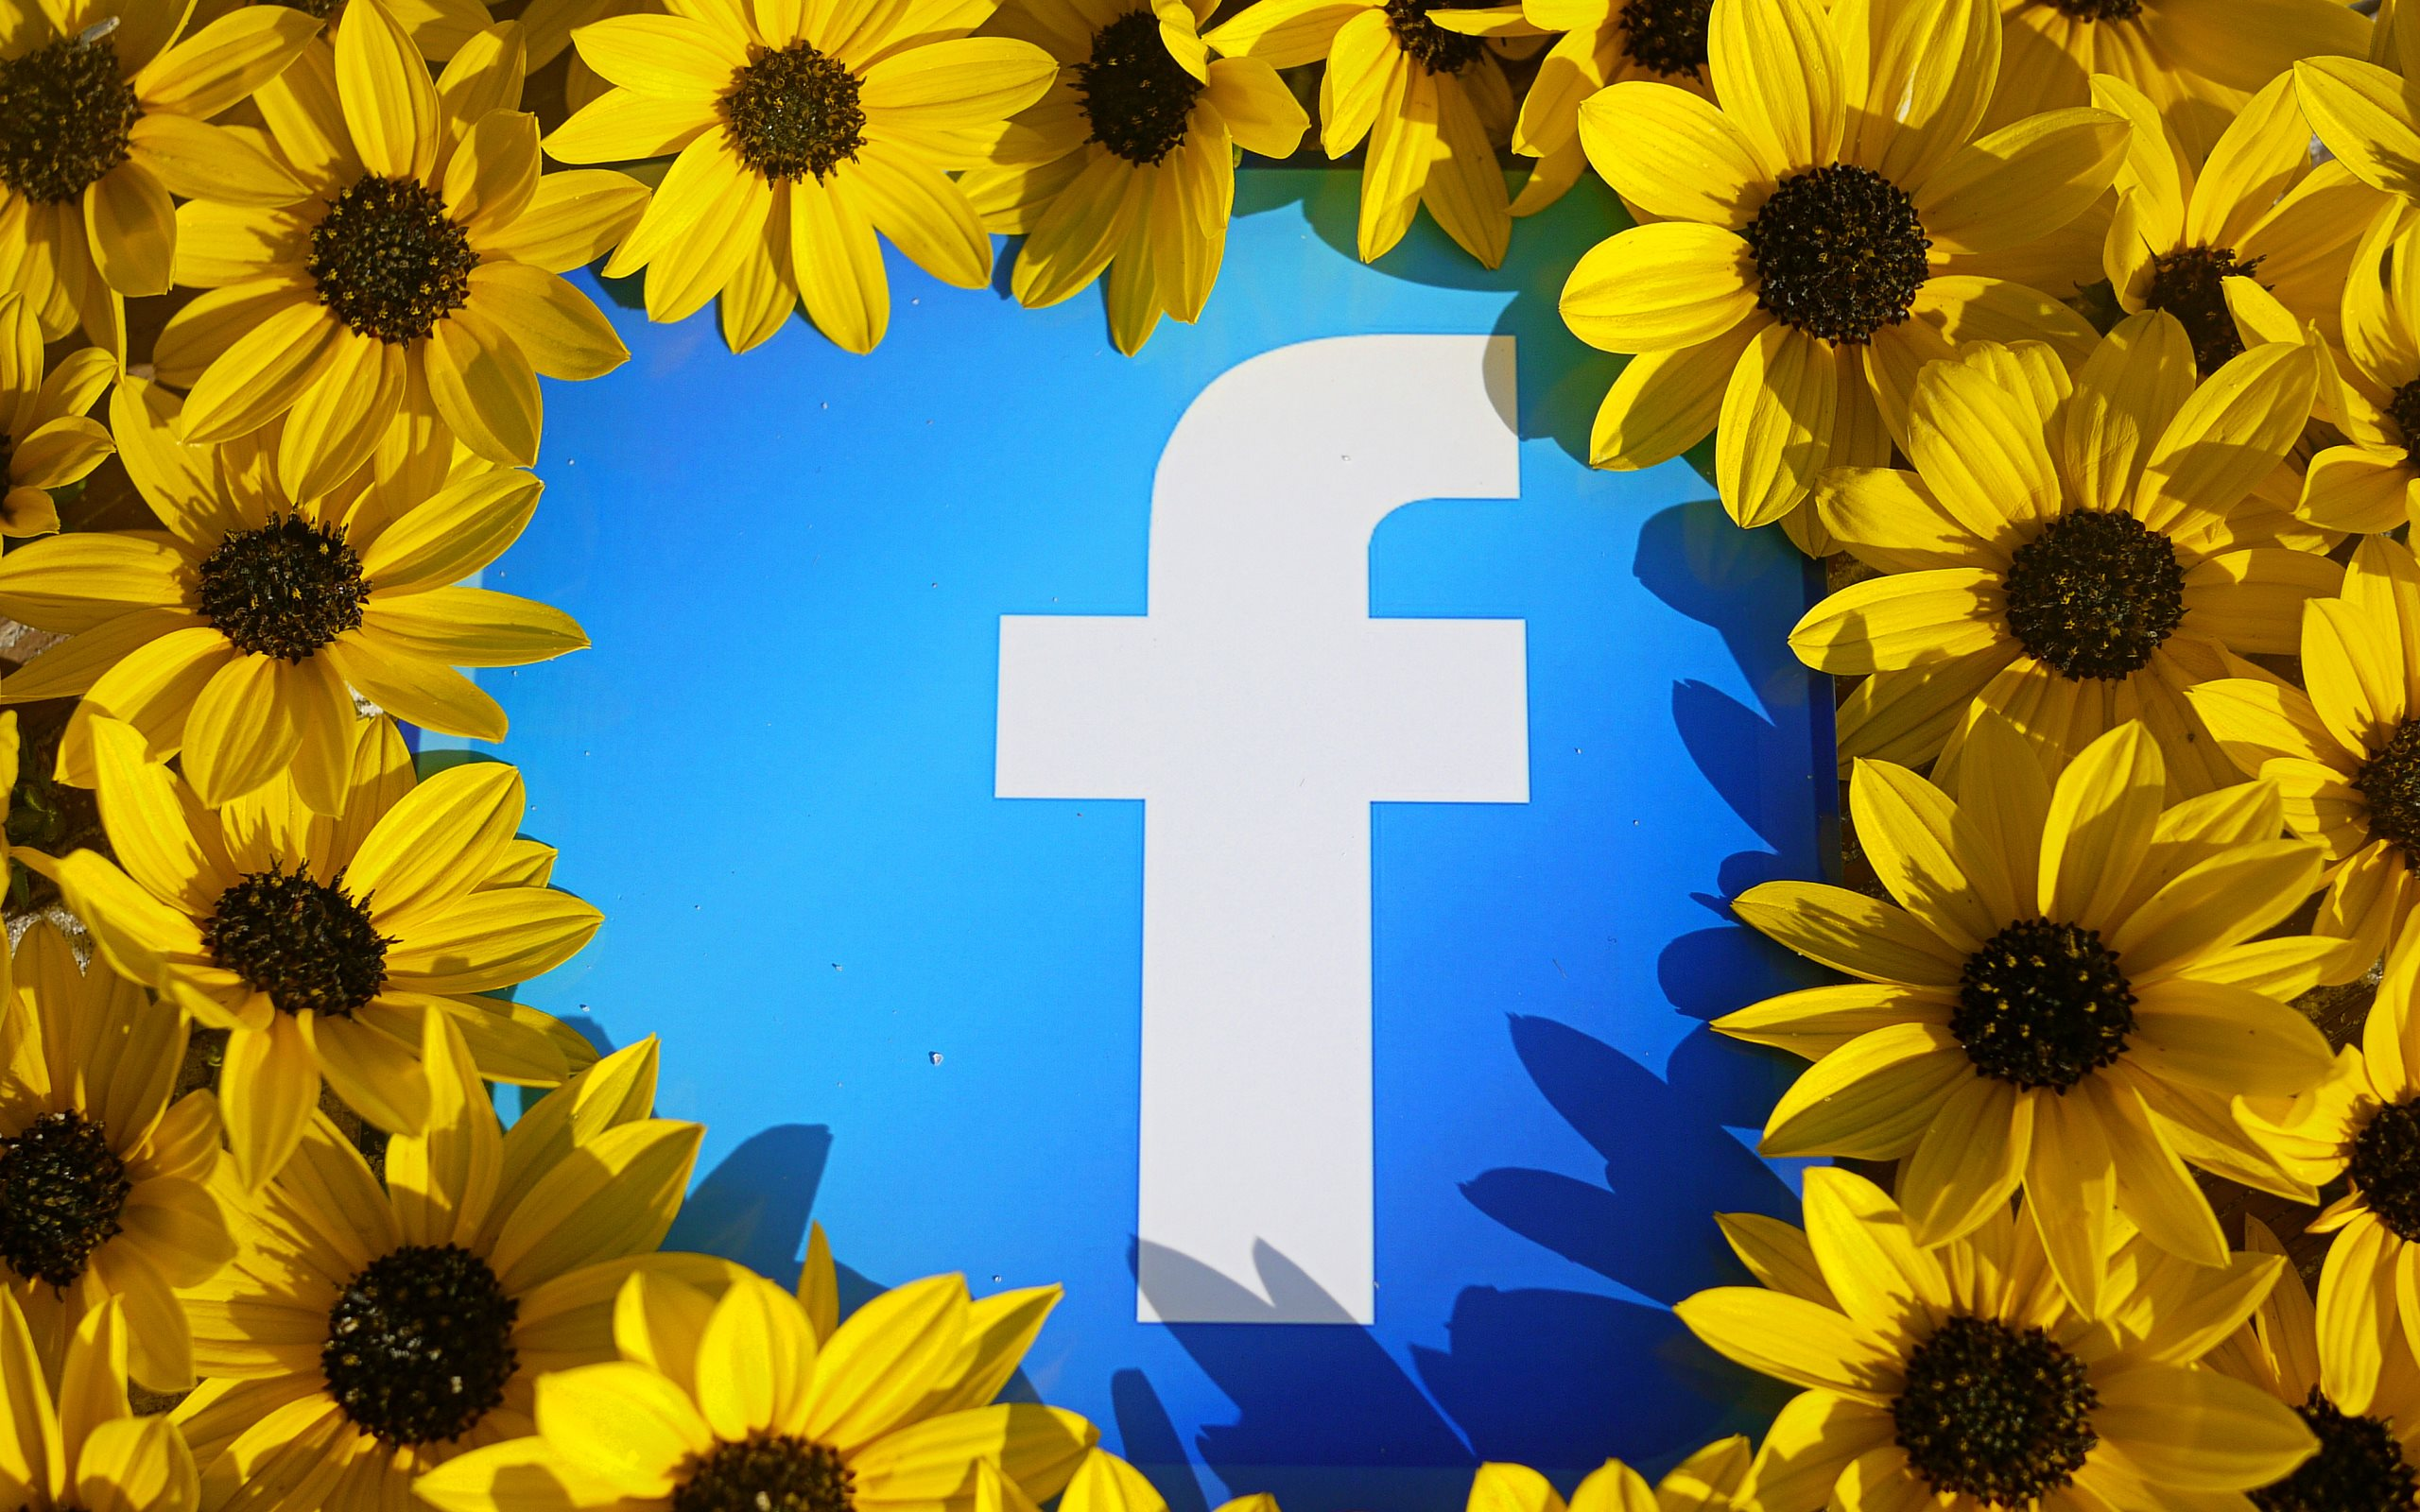 Facebook Wallpapers Backgrounds Hd 08